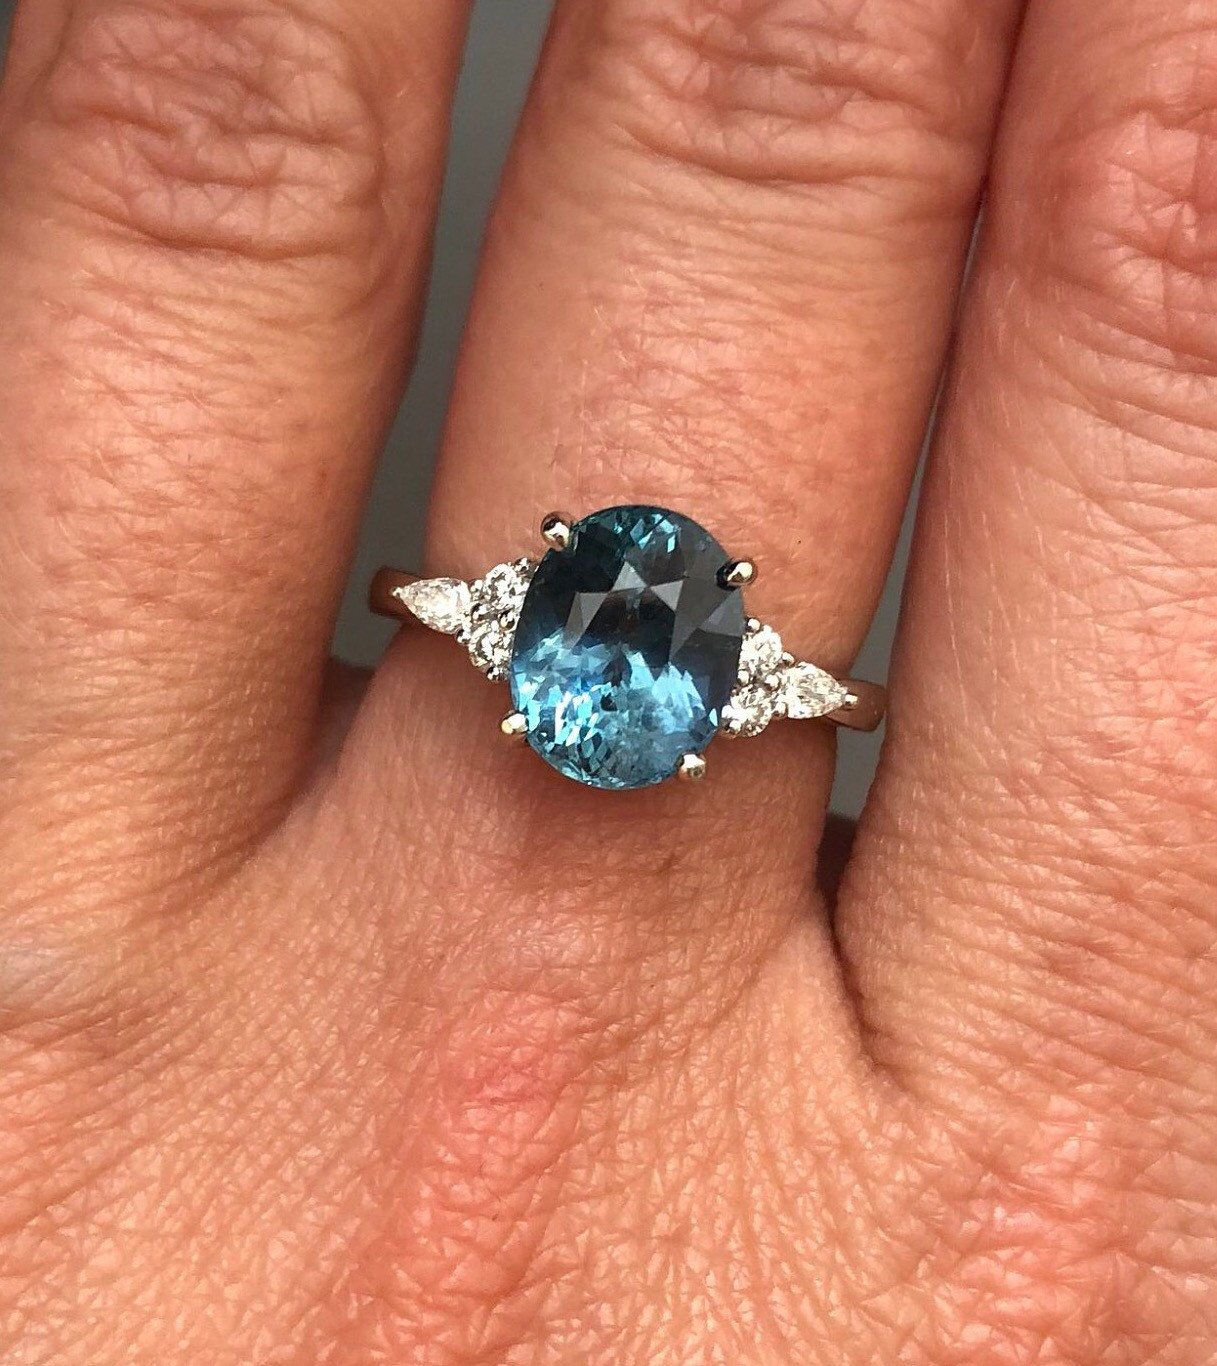 Teal sapphire engagement ring. Peacock green sapphire 3